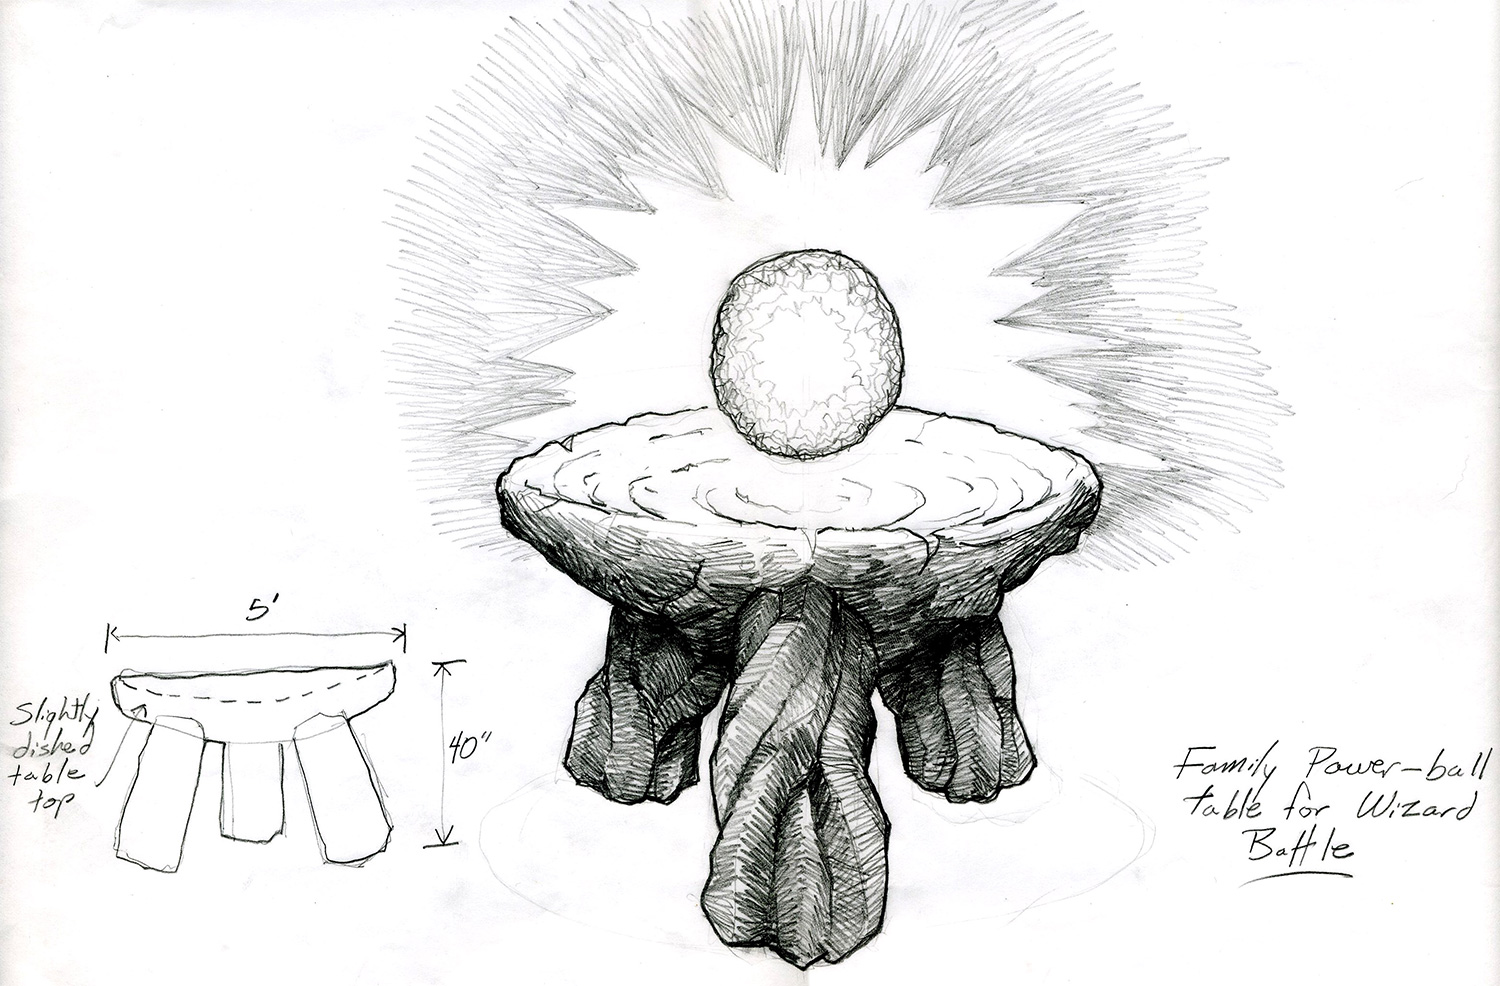 """This is a working drawing for the stone table in the center of the concentric obelisks that holds the sought after, magical object in the """"Wizard Battle"""" scene from """"The Wizards of Waverly Place: The Movie"""" (2009)."""